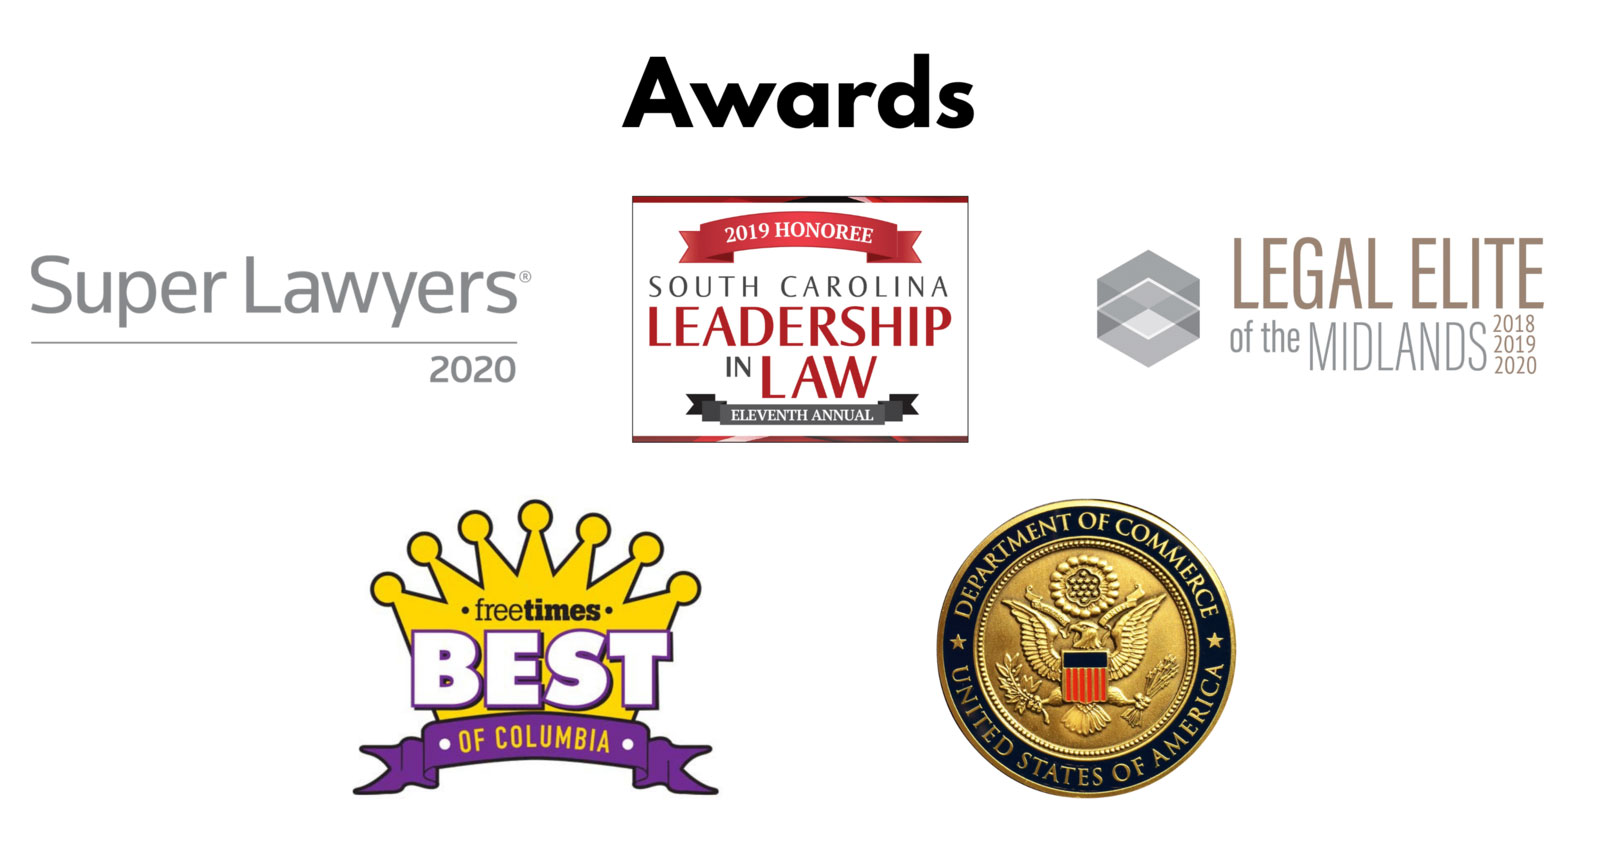 Awards won by the Law Office of Kenneth Berger